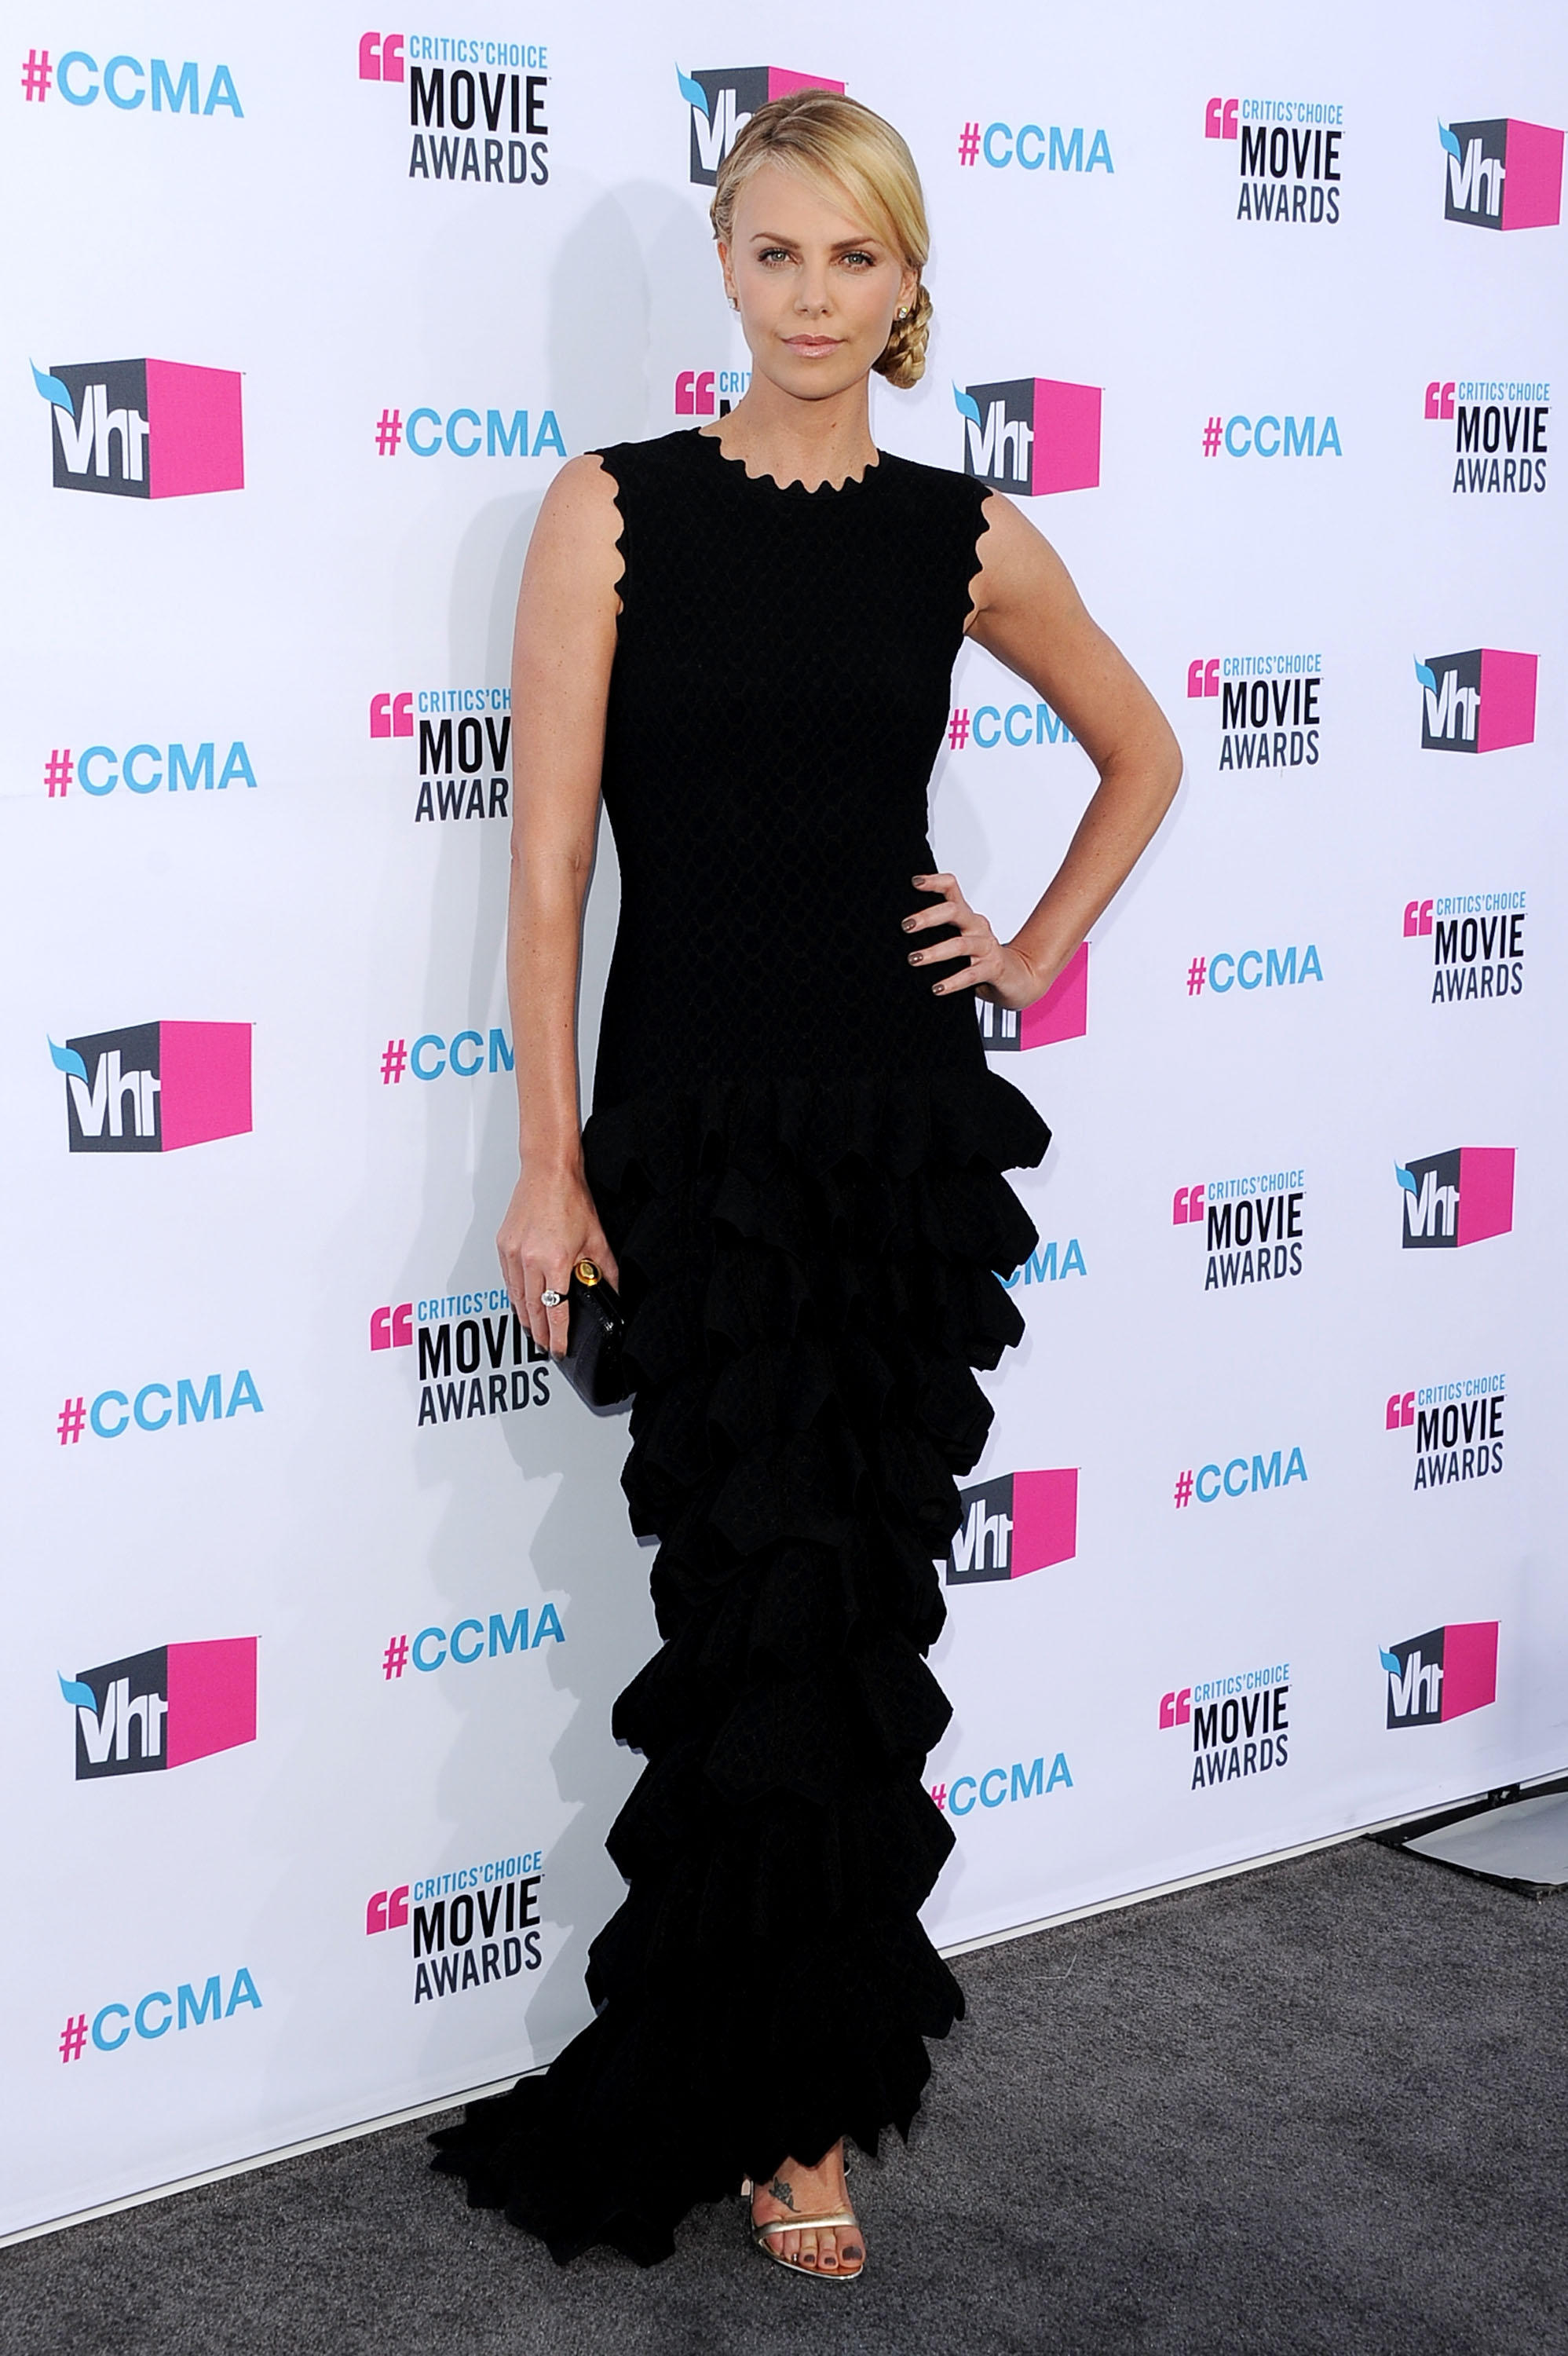 Charlize Theron in a layered black dress at the 2012 Critics' Choice Movie Awards.